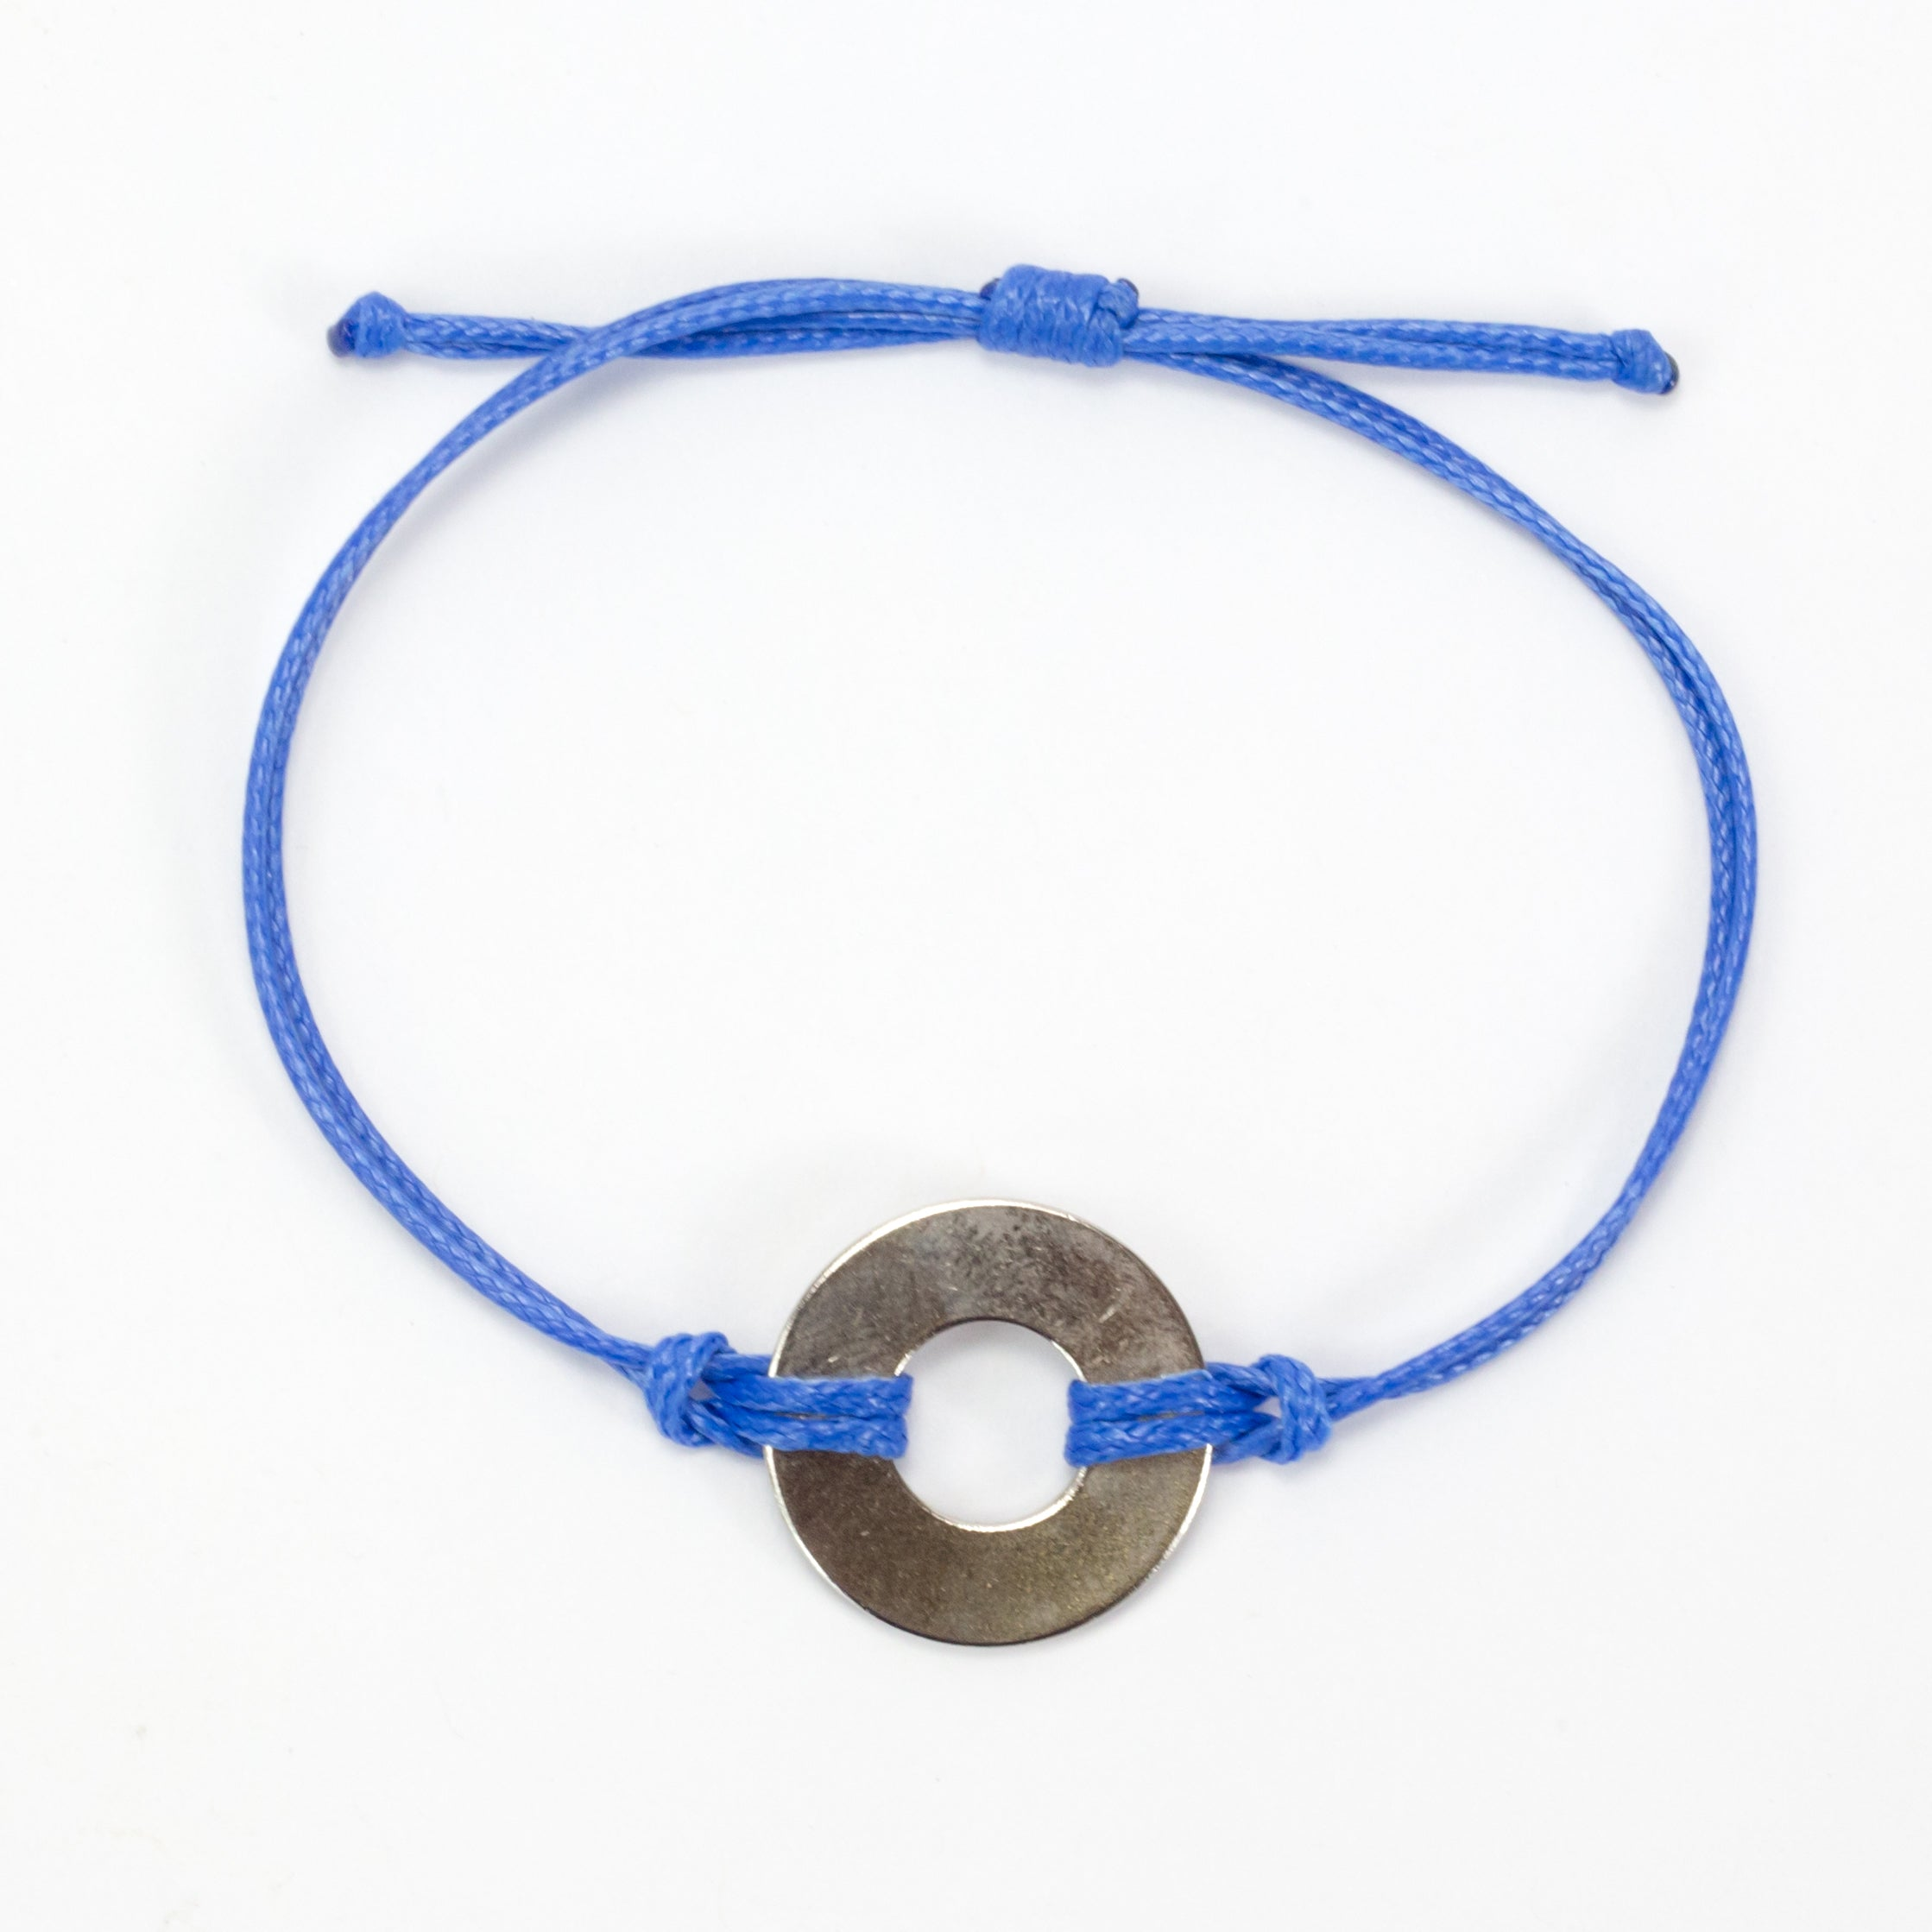 MyIntent Refill Classic Bracelet Blue String with Nickel token